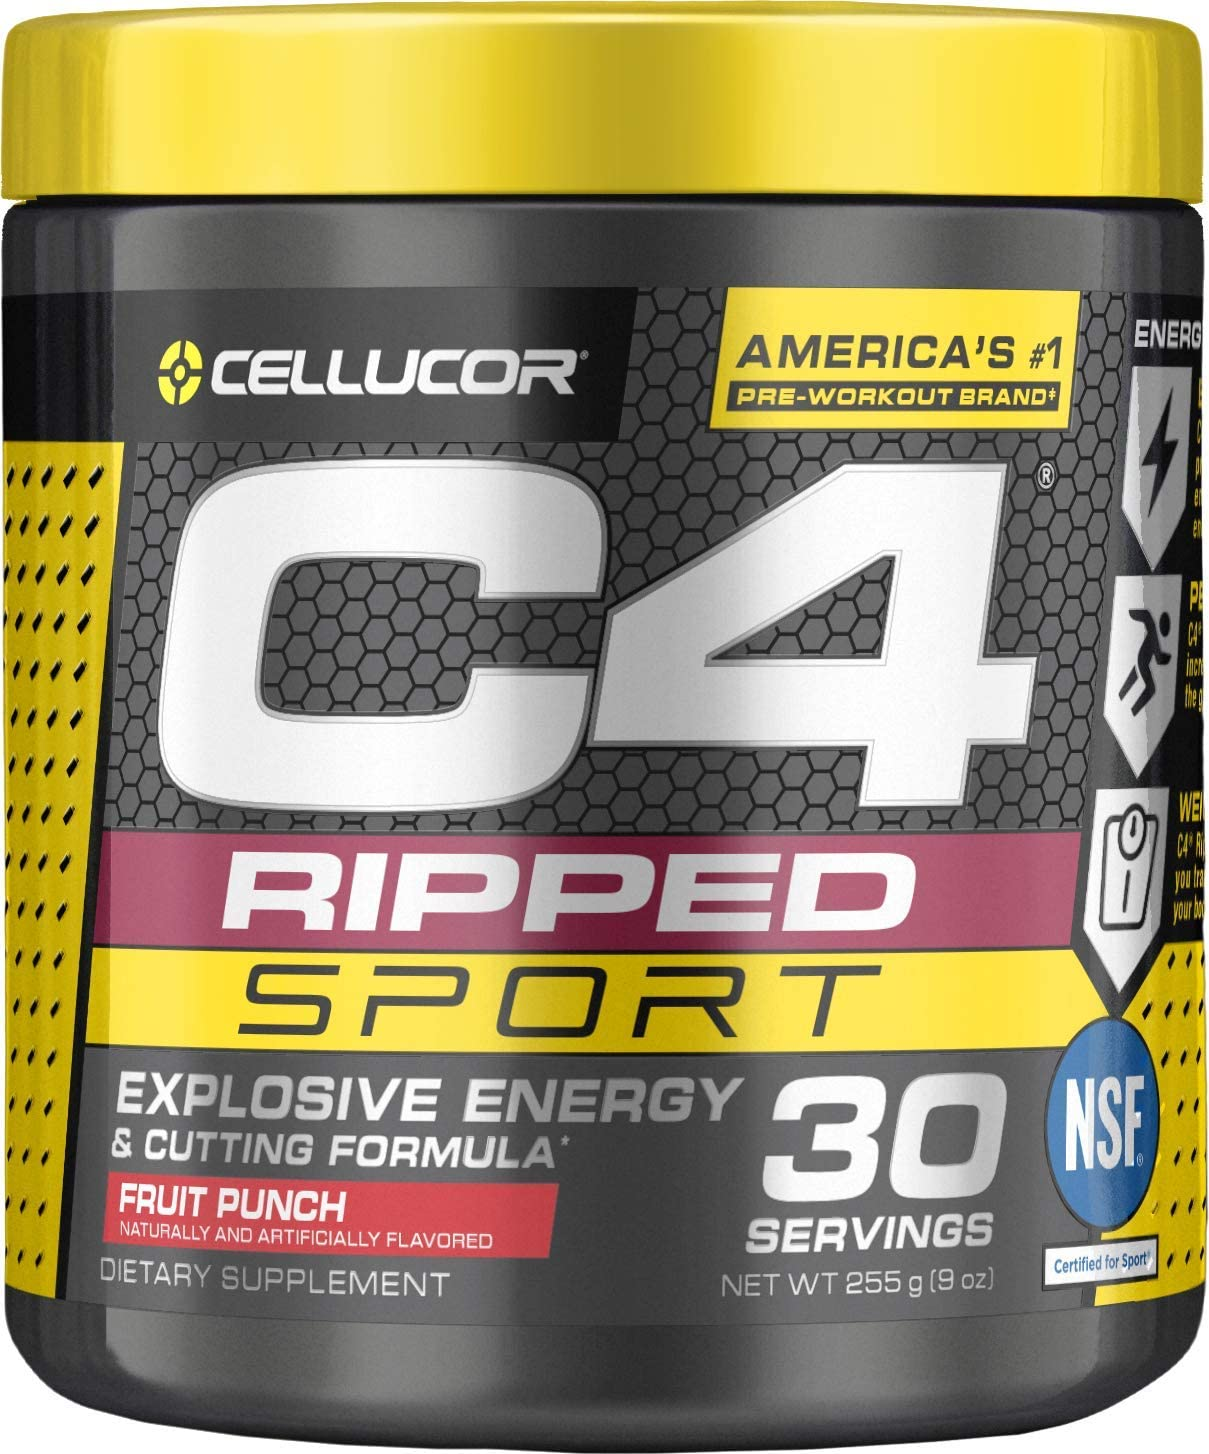 C4 Ripped Sport Pre Workout Powder Fruit Punch NSF Certified for Sport Sugar Free Preworkout Energy Supplement for Men Women 135mg Caffeine Weight Loss 30 Servings